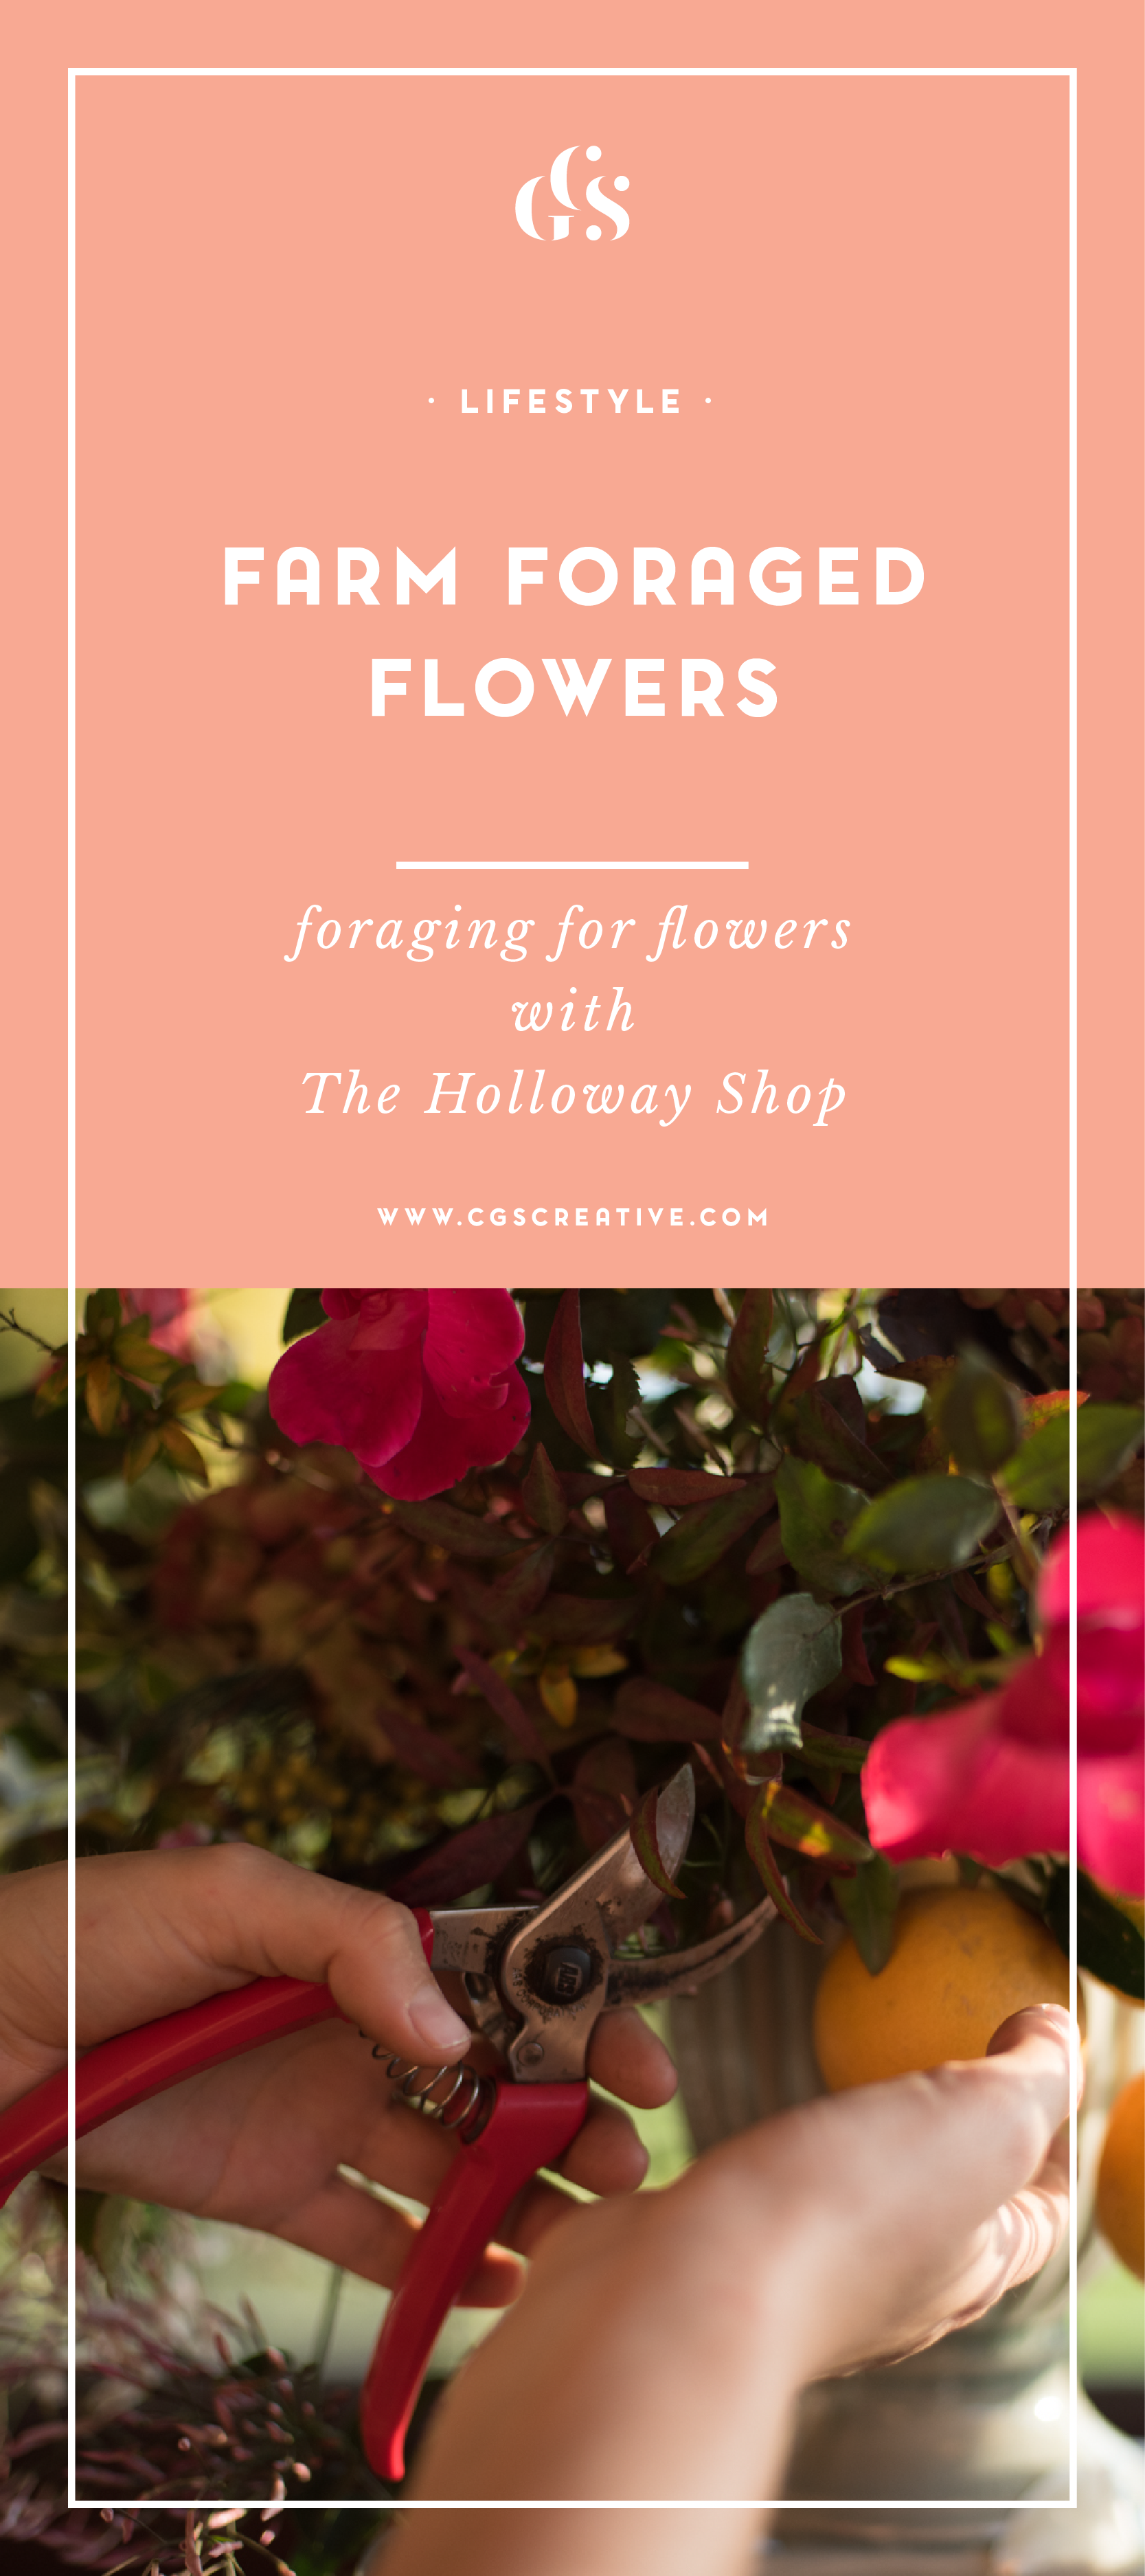 Farm Foraged Flowers with Storm Ross of The Holloway Shop Photos by Roxy Hutton of CGScreative & CityGirlSearching_Artboard 3.png